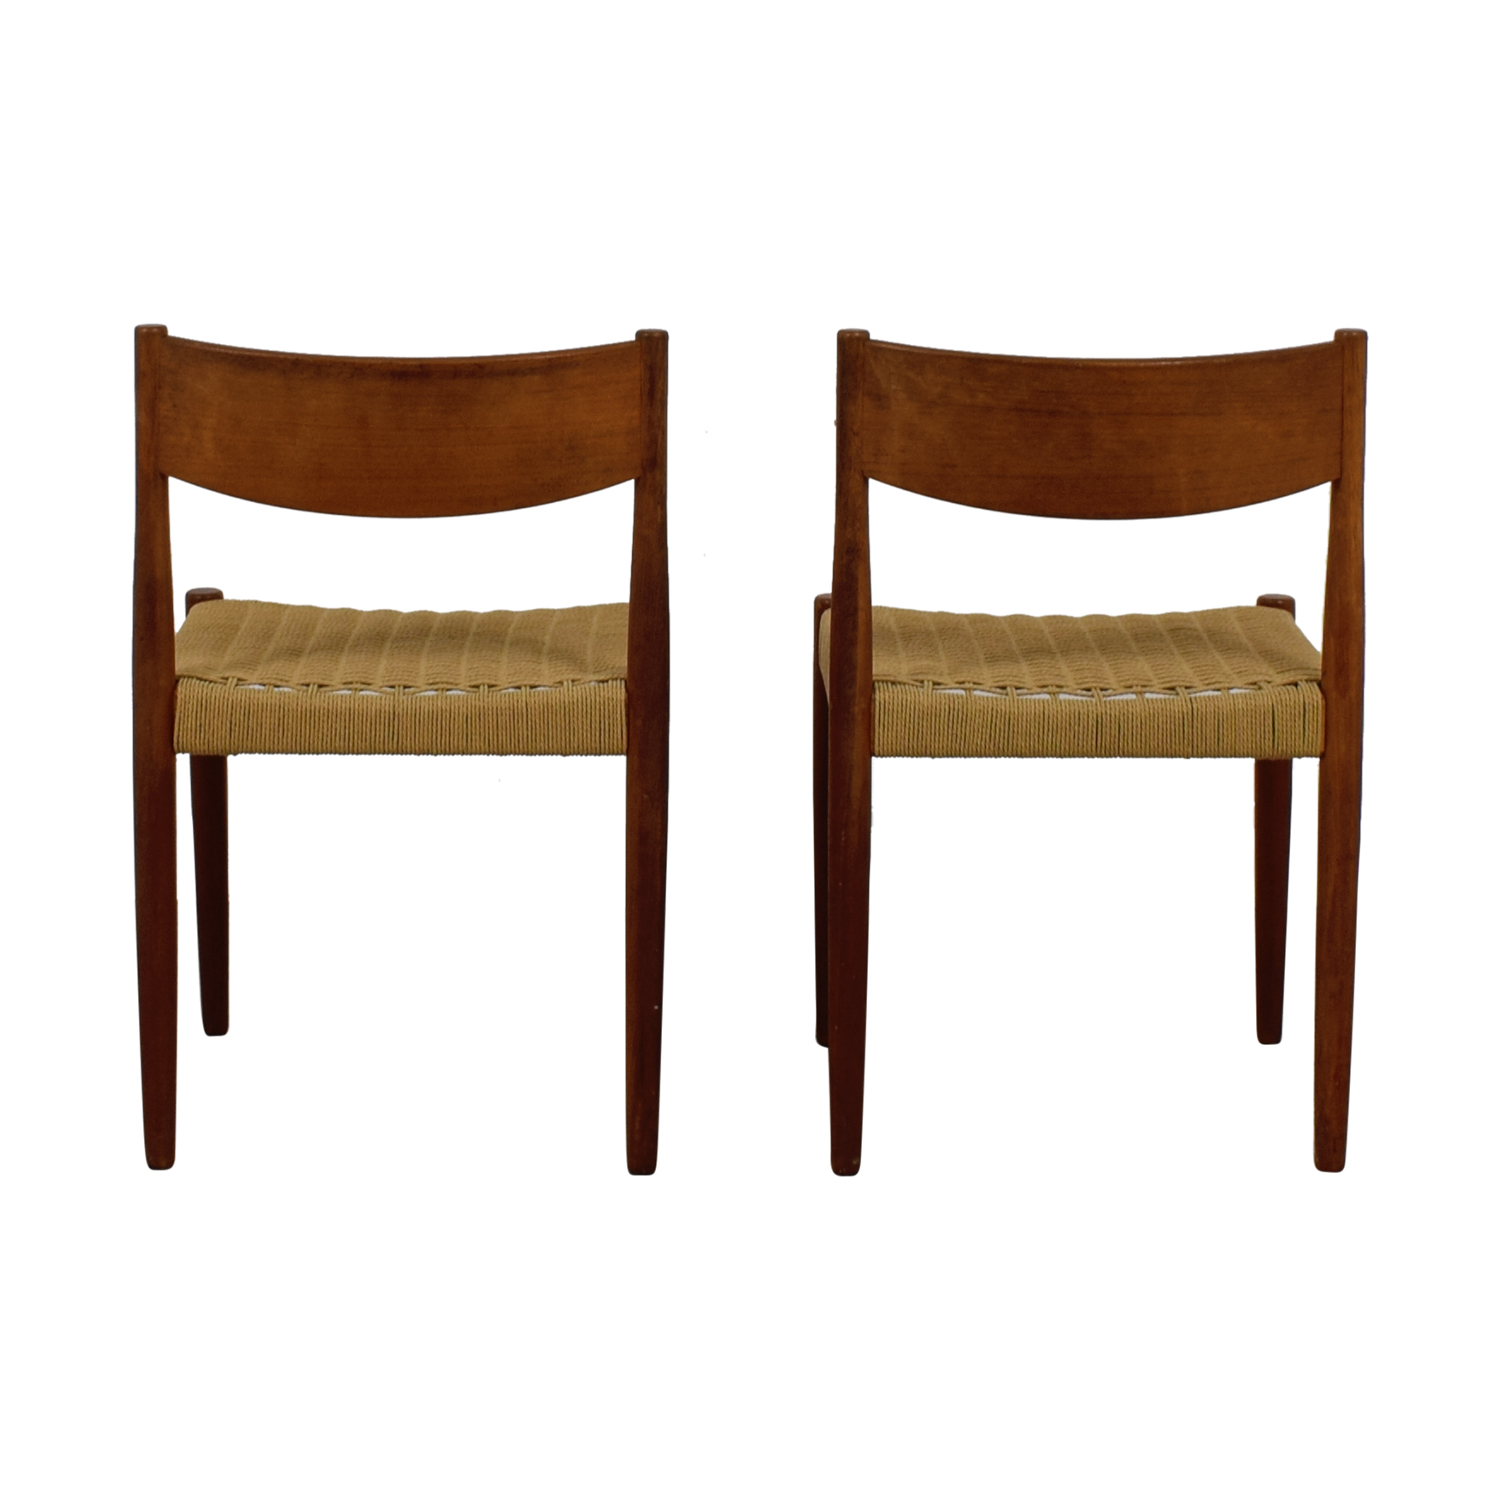 shop Vintage Wood and Sisal Woven Chairs  Dining Chairs